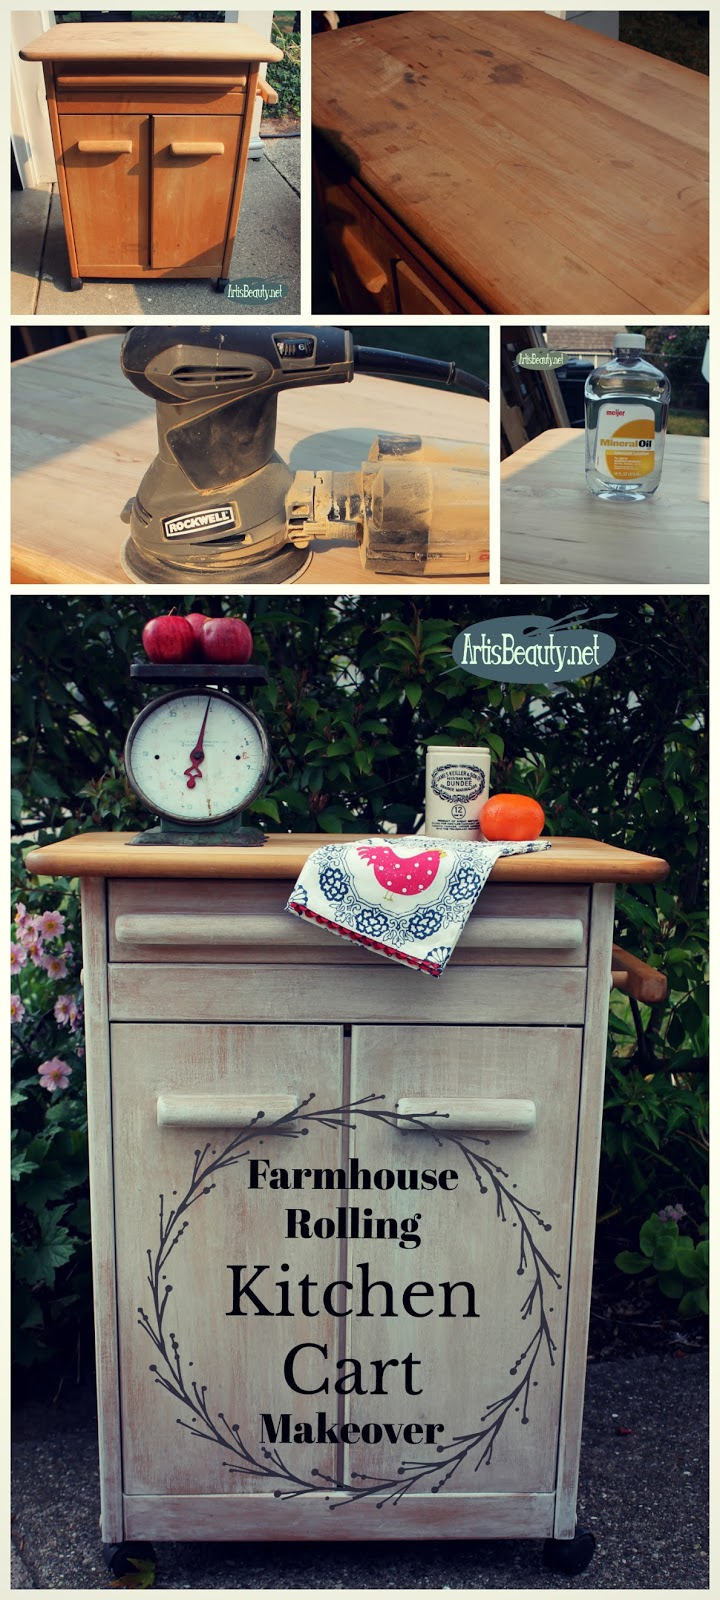 Superb farmhouse rolling kitchen cart makeover diy before and after vintage butcher block refinishing